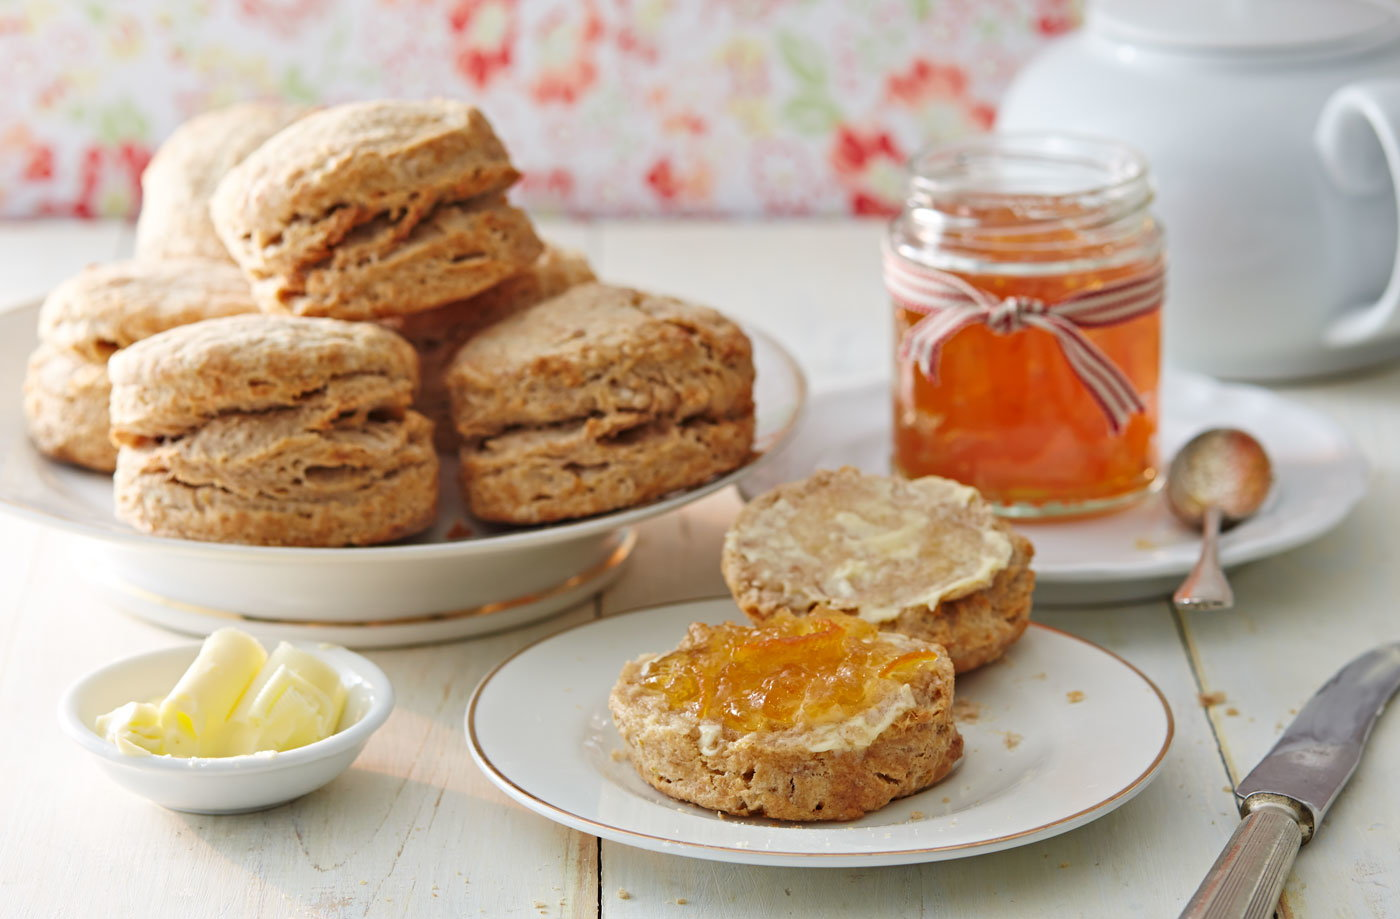 Orange and cinnamon scones recipe